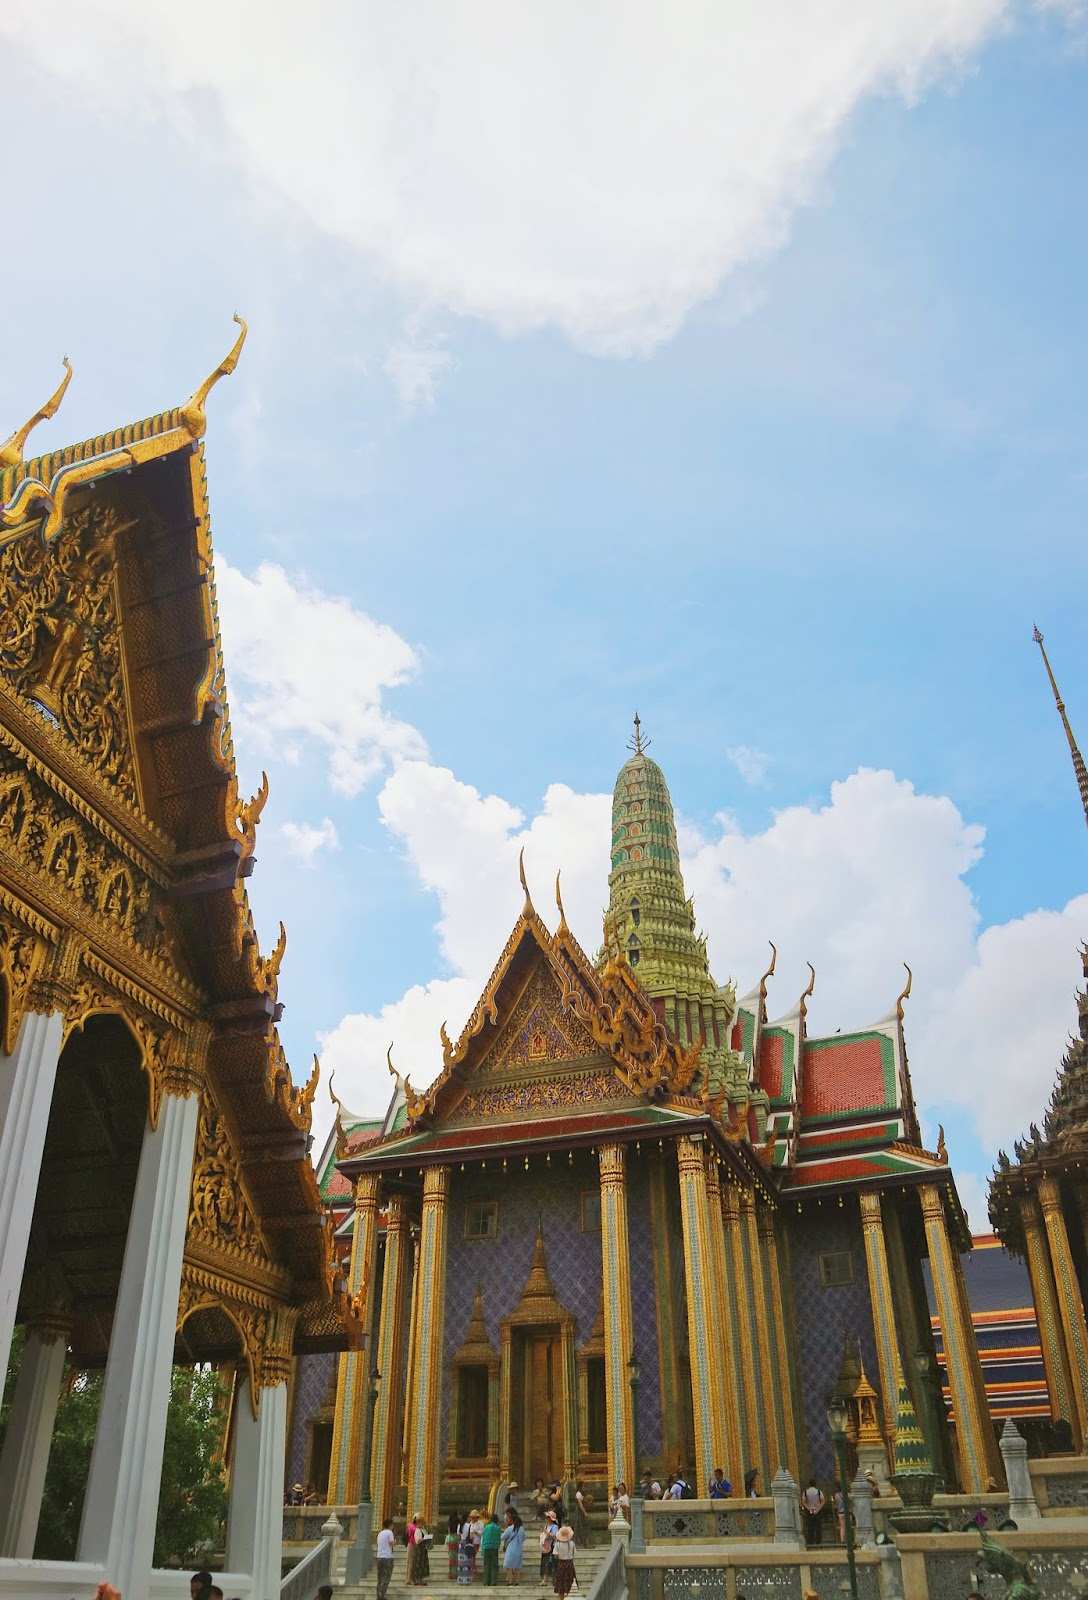 The Grand Palace and Temple of the Emerald Buddha